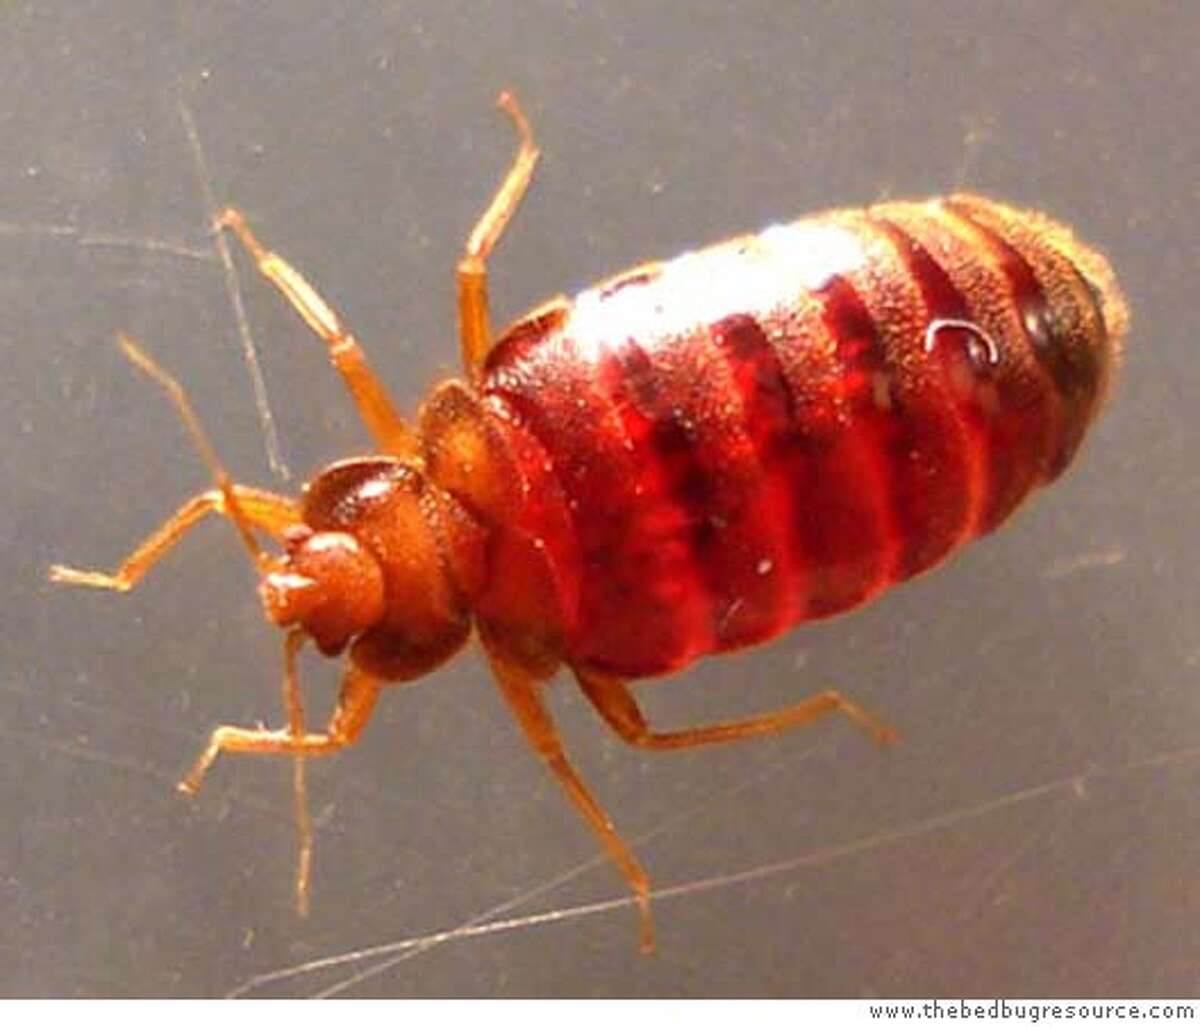 Adult Bed Bug photo from the california dept of health services. CREDIT: www.thebedbugresource.com